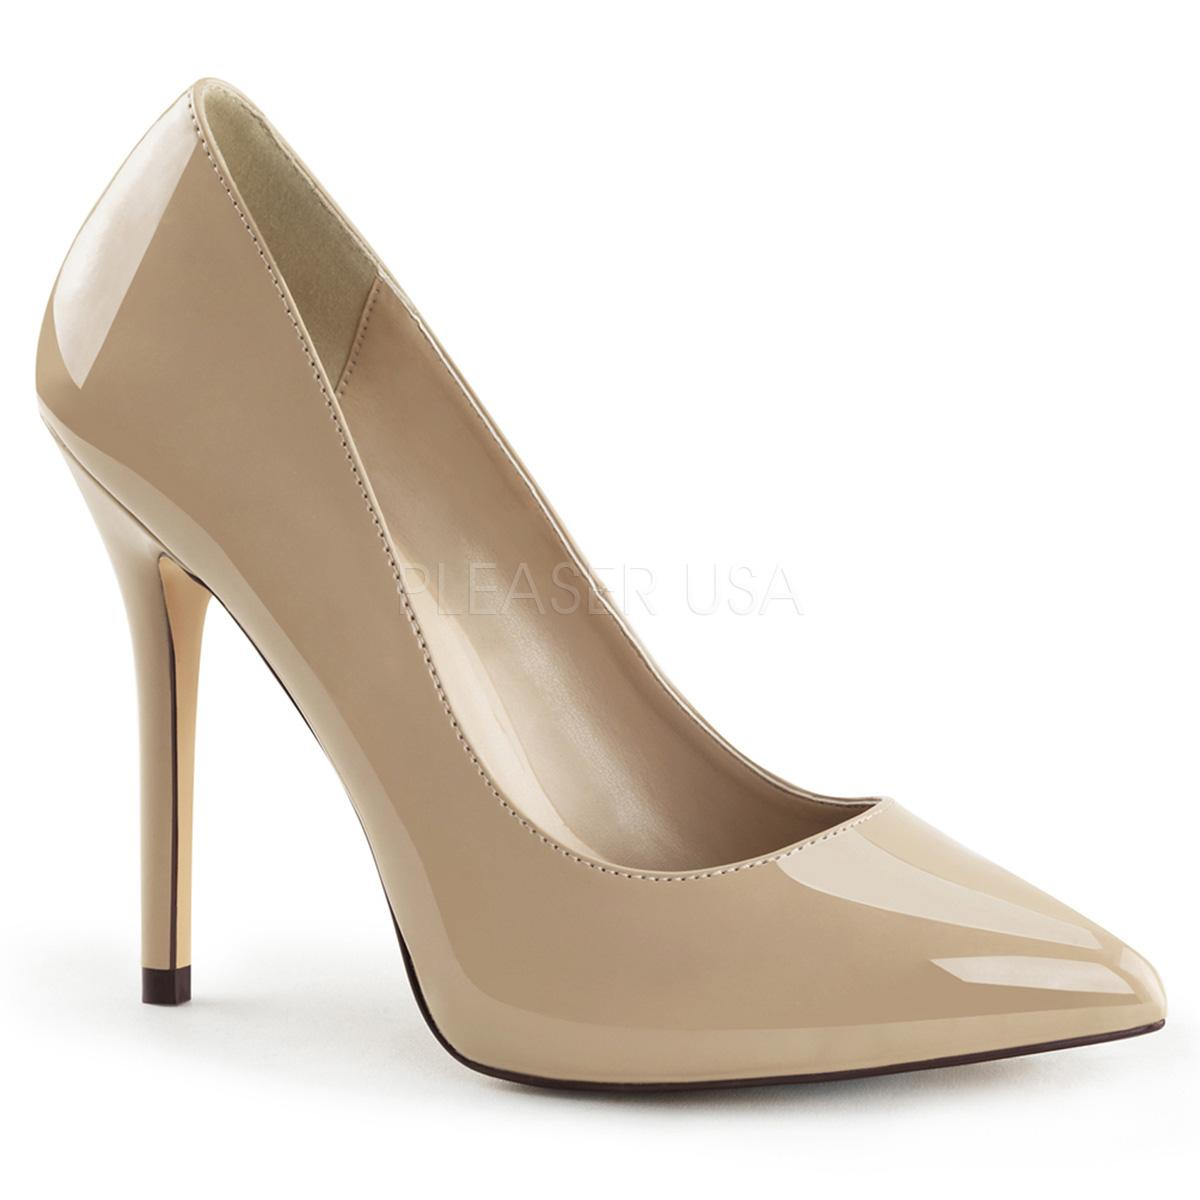 Premier Cream Court Shoe